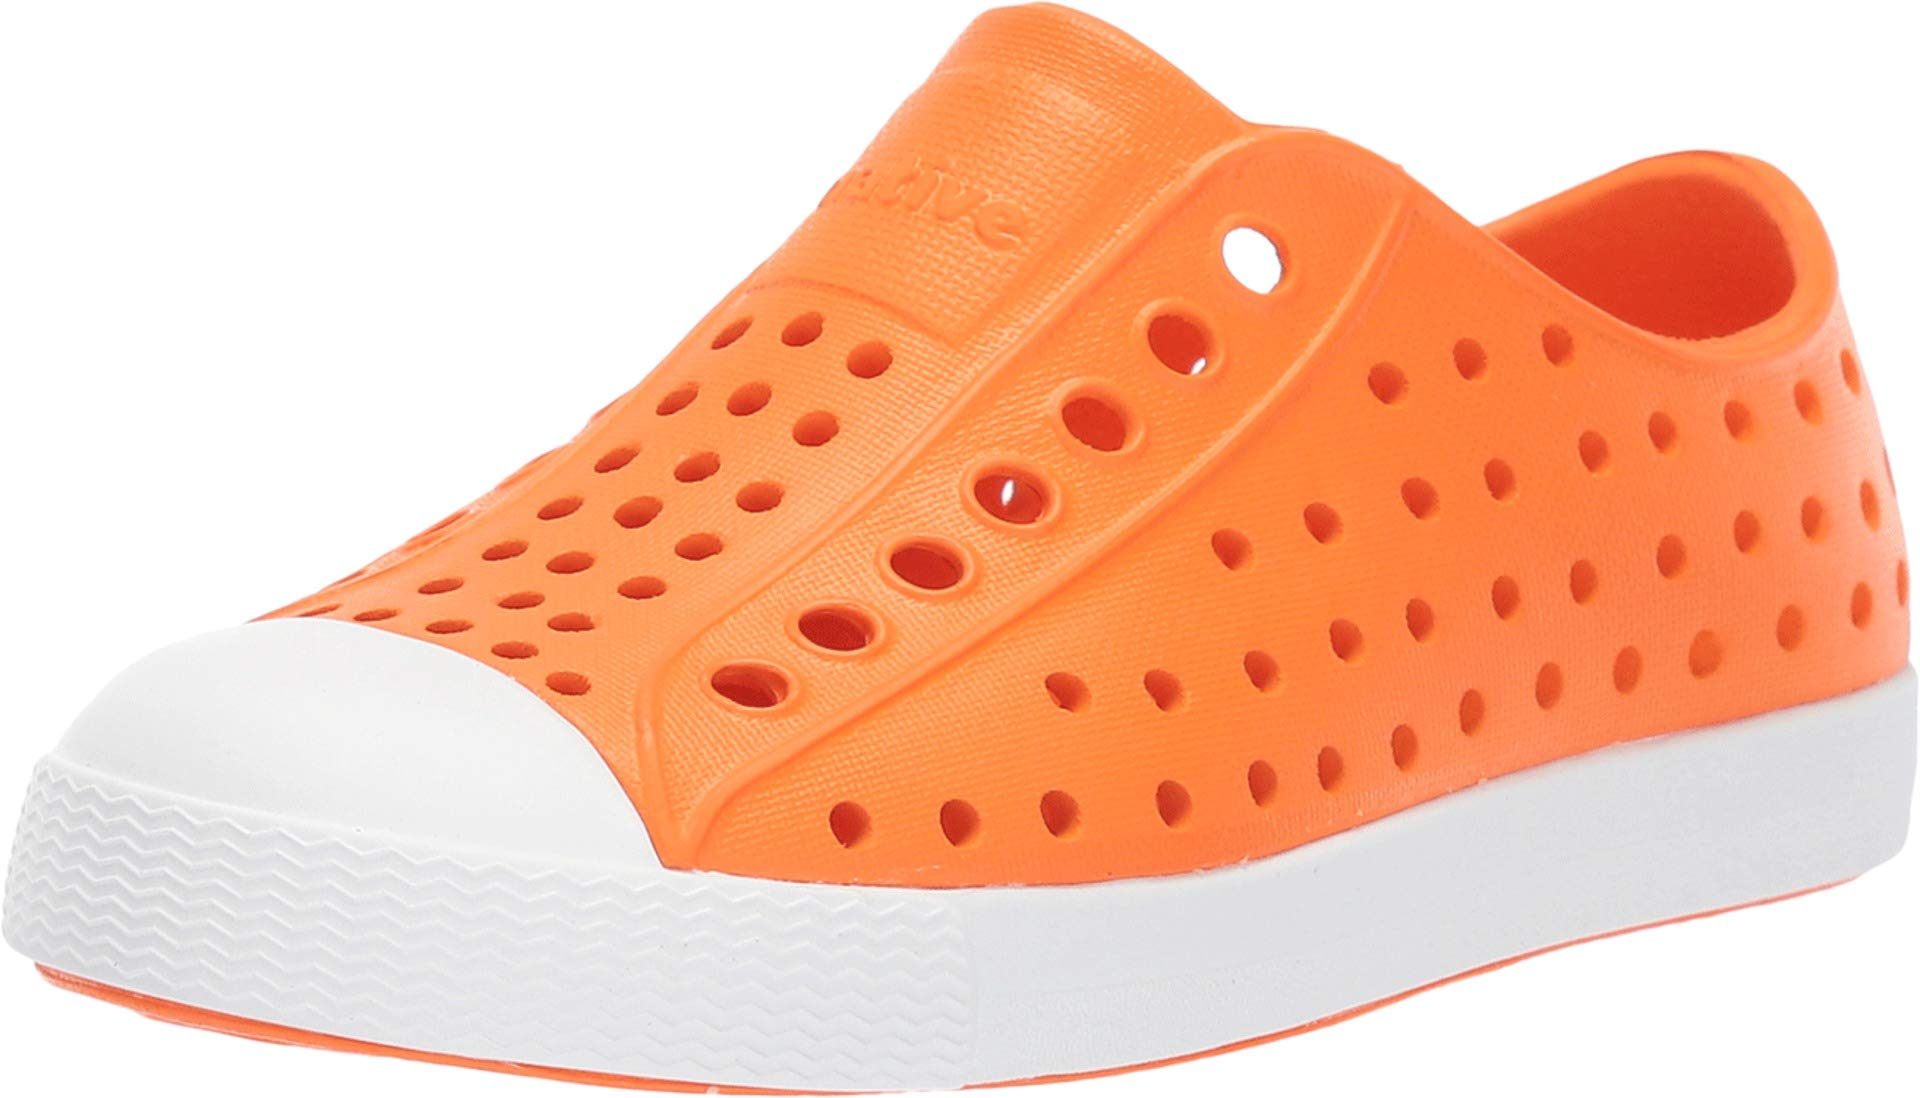 Native Kids Shoes Unisex Jefferson (Toddler/Little Kid) City Orange/Shell White 4 M US Toddler